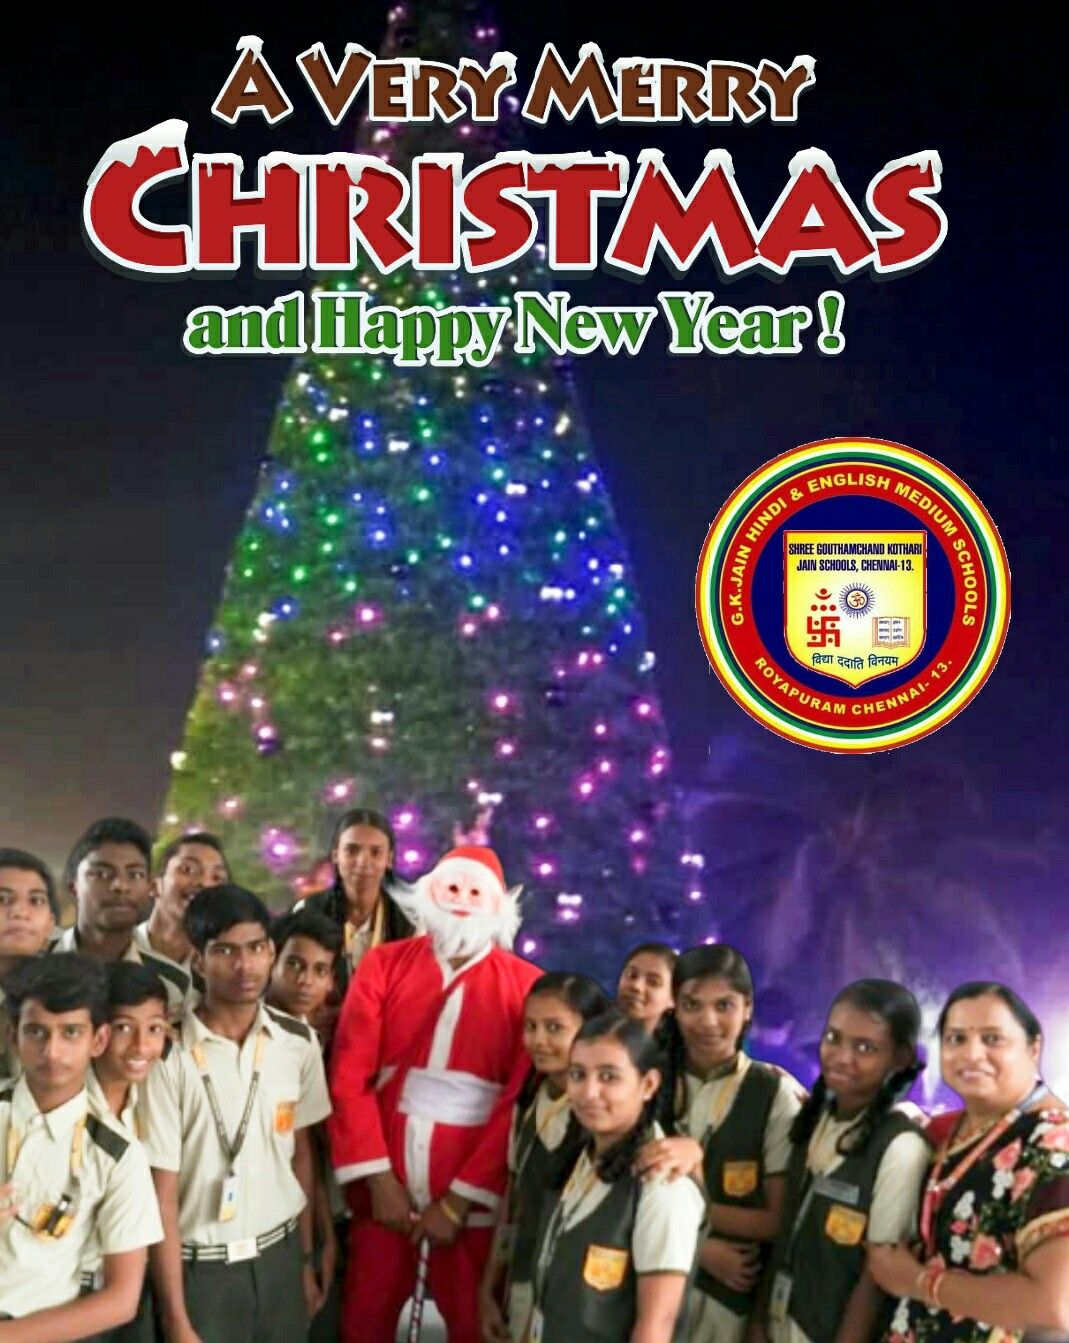 Merry Christmas From G K Jain Schools Merry Christmas And Happy New Year Very Merry Christmas Merry Christmas